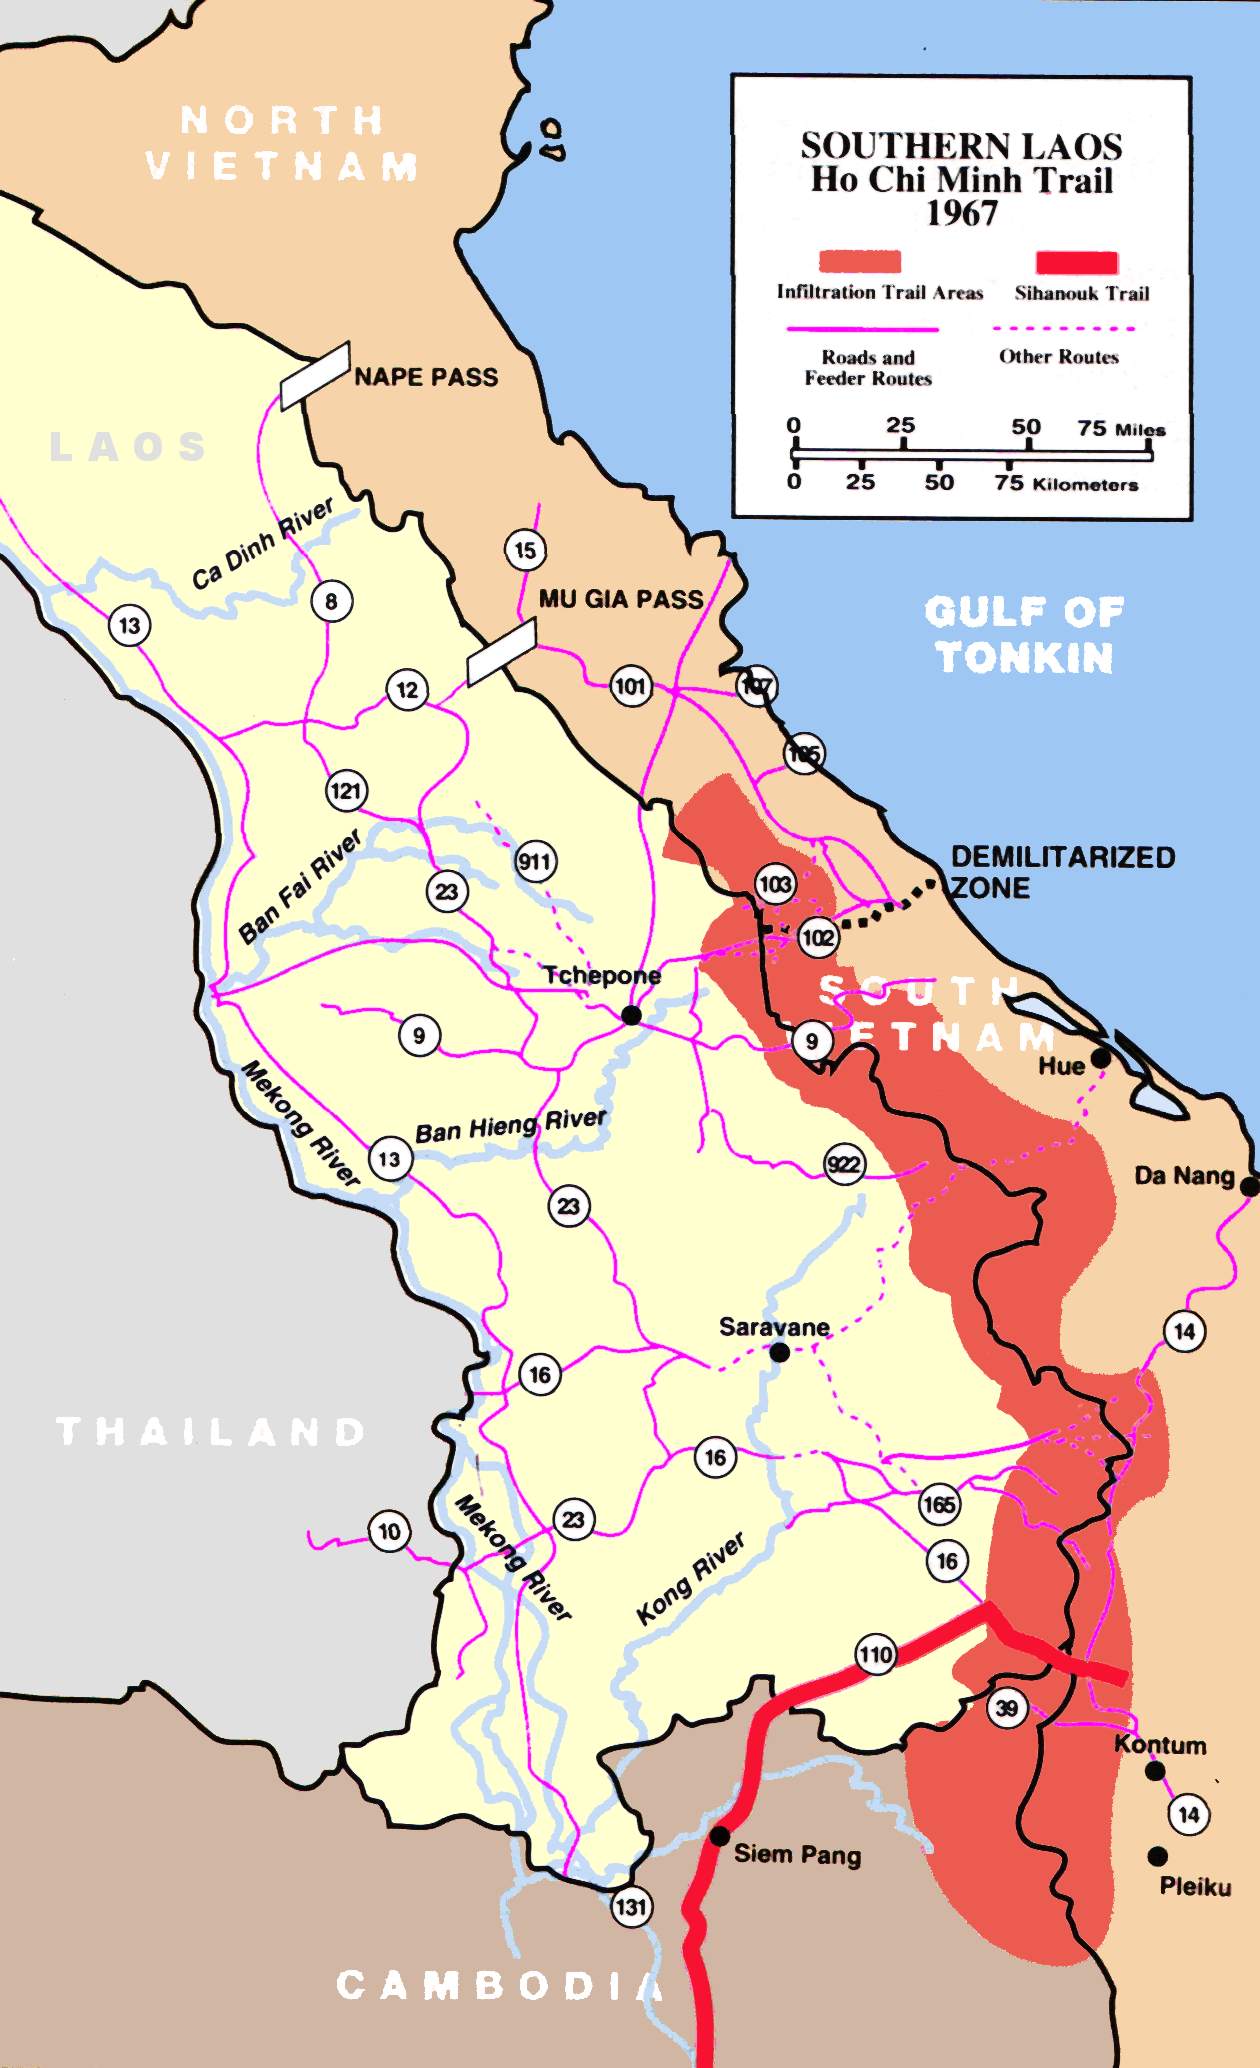 Ho Chi Minh trail - Wikipedia Thousand Trails Map on coachella valley map, palm springs map, echo lakes trail map, echo ridge trail map, seaway wine trail map,